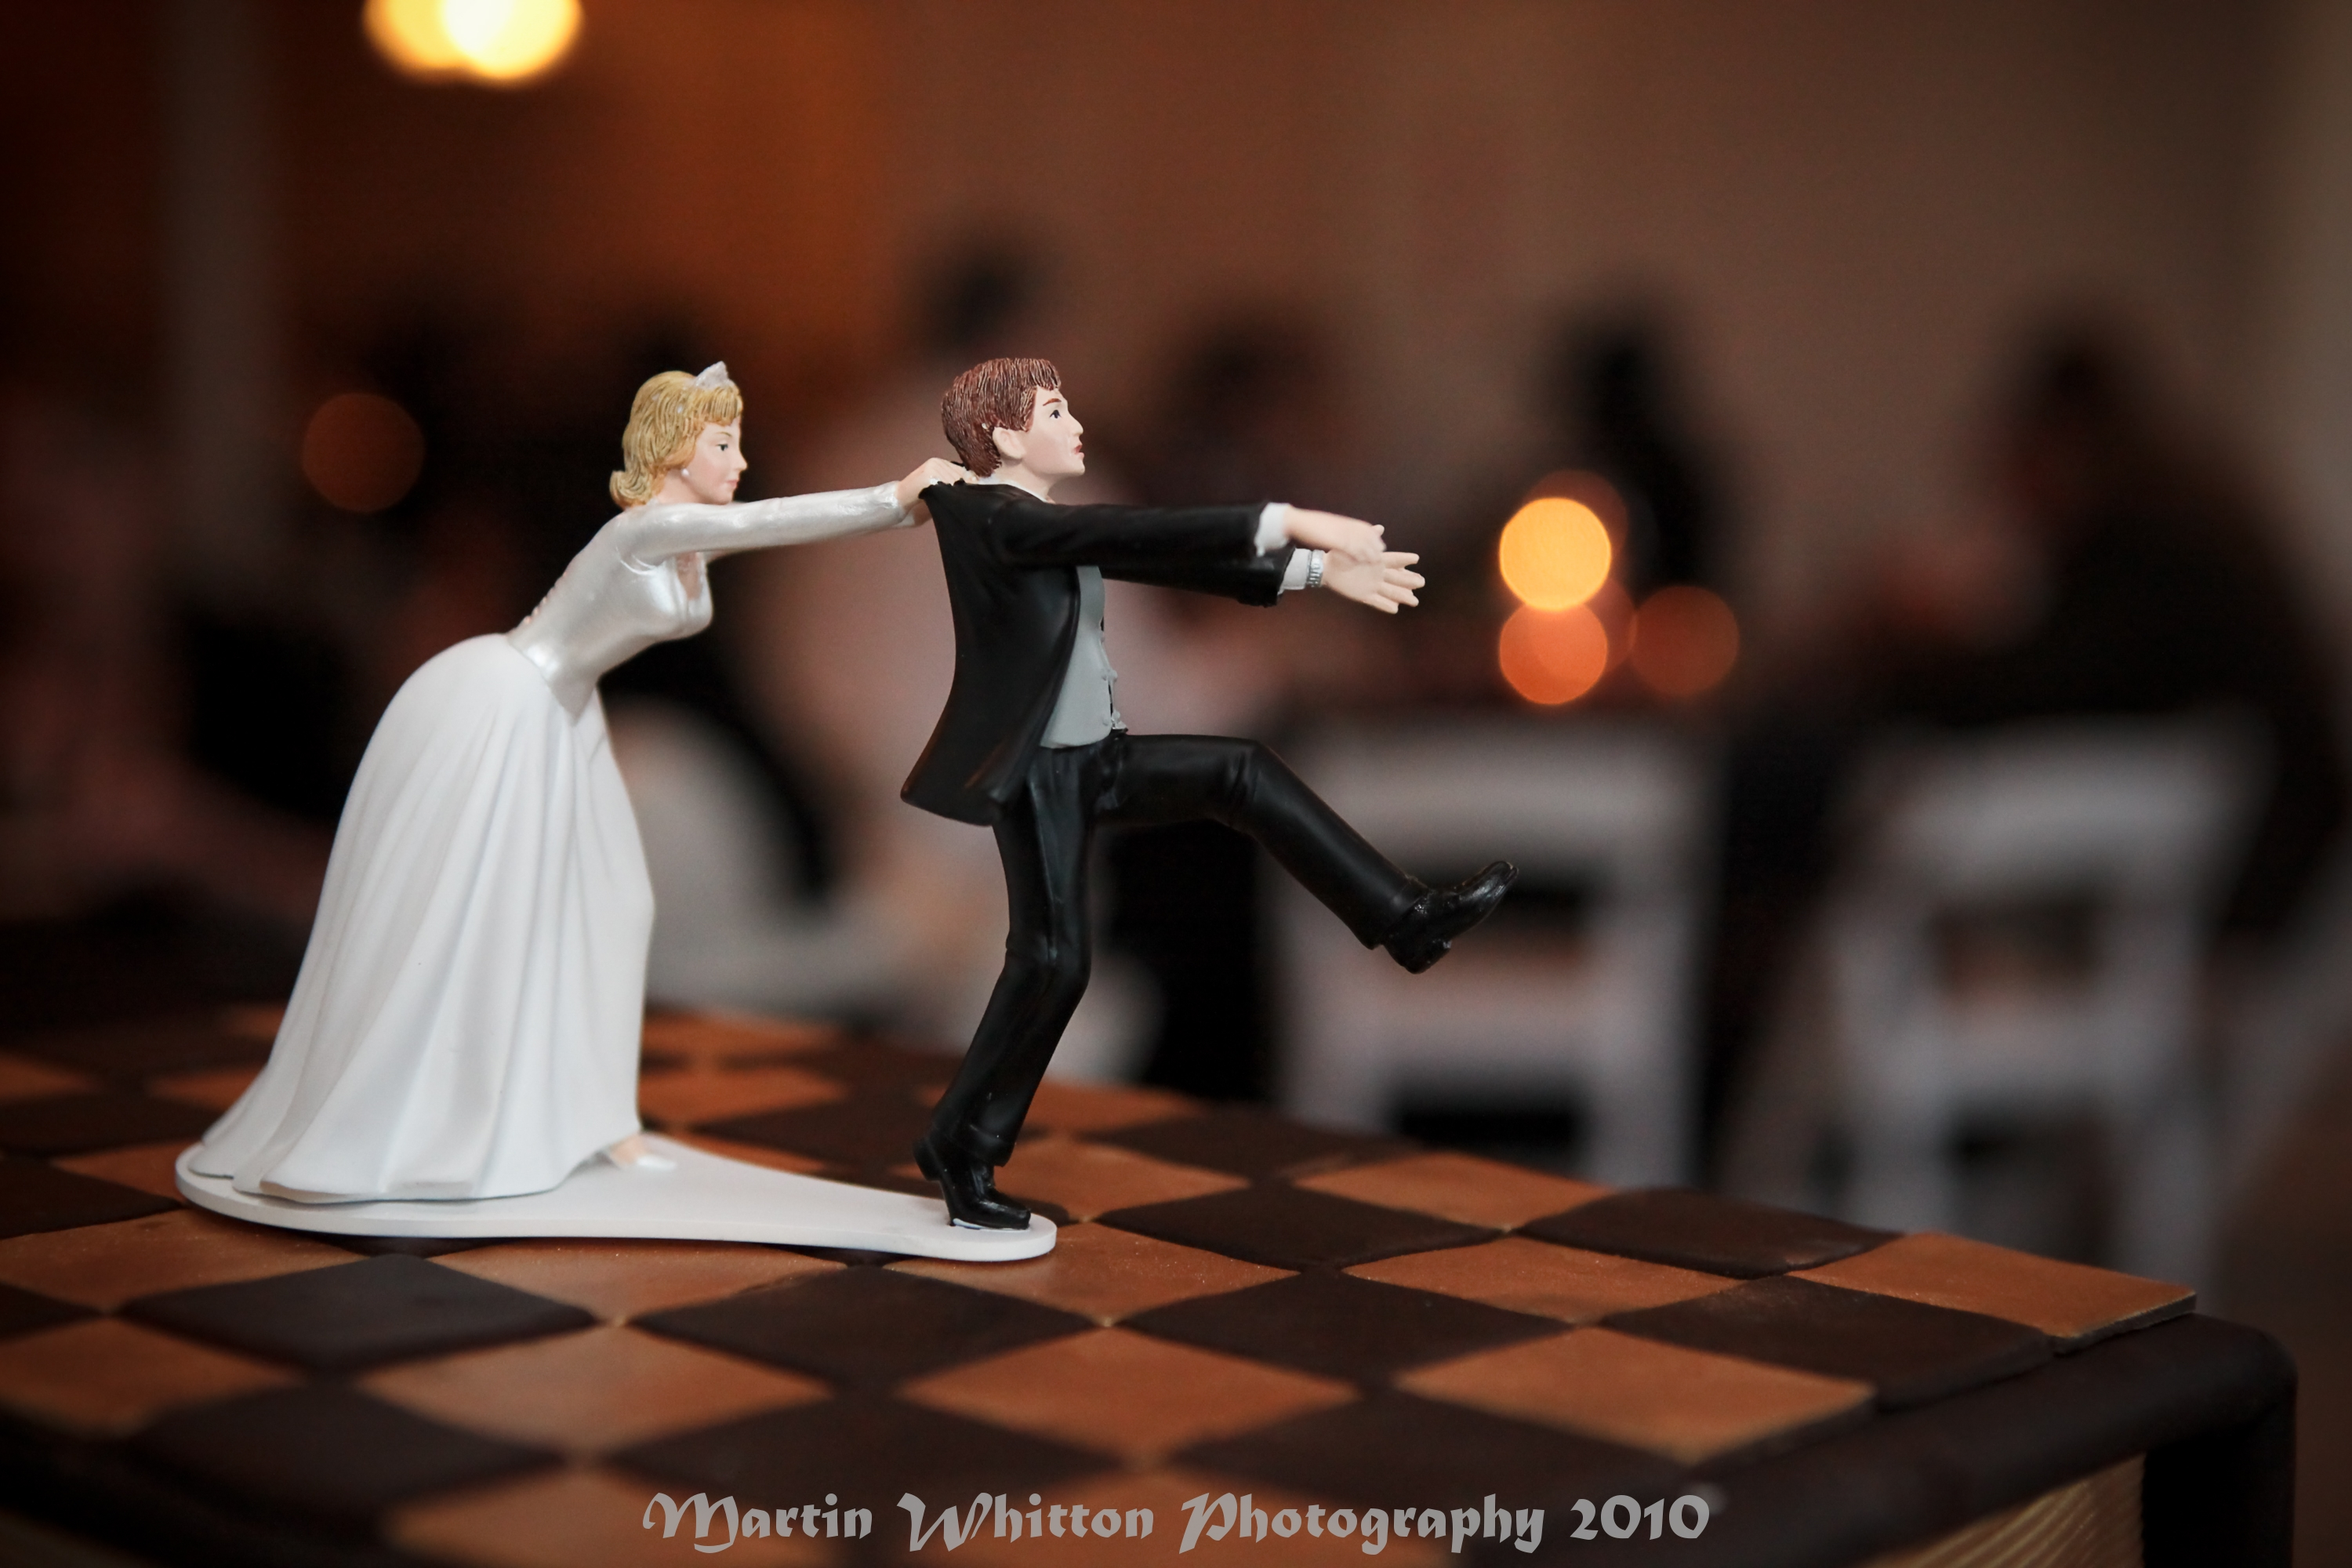 How To Spot A Groomzilla Groom Running From Bride